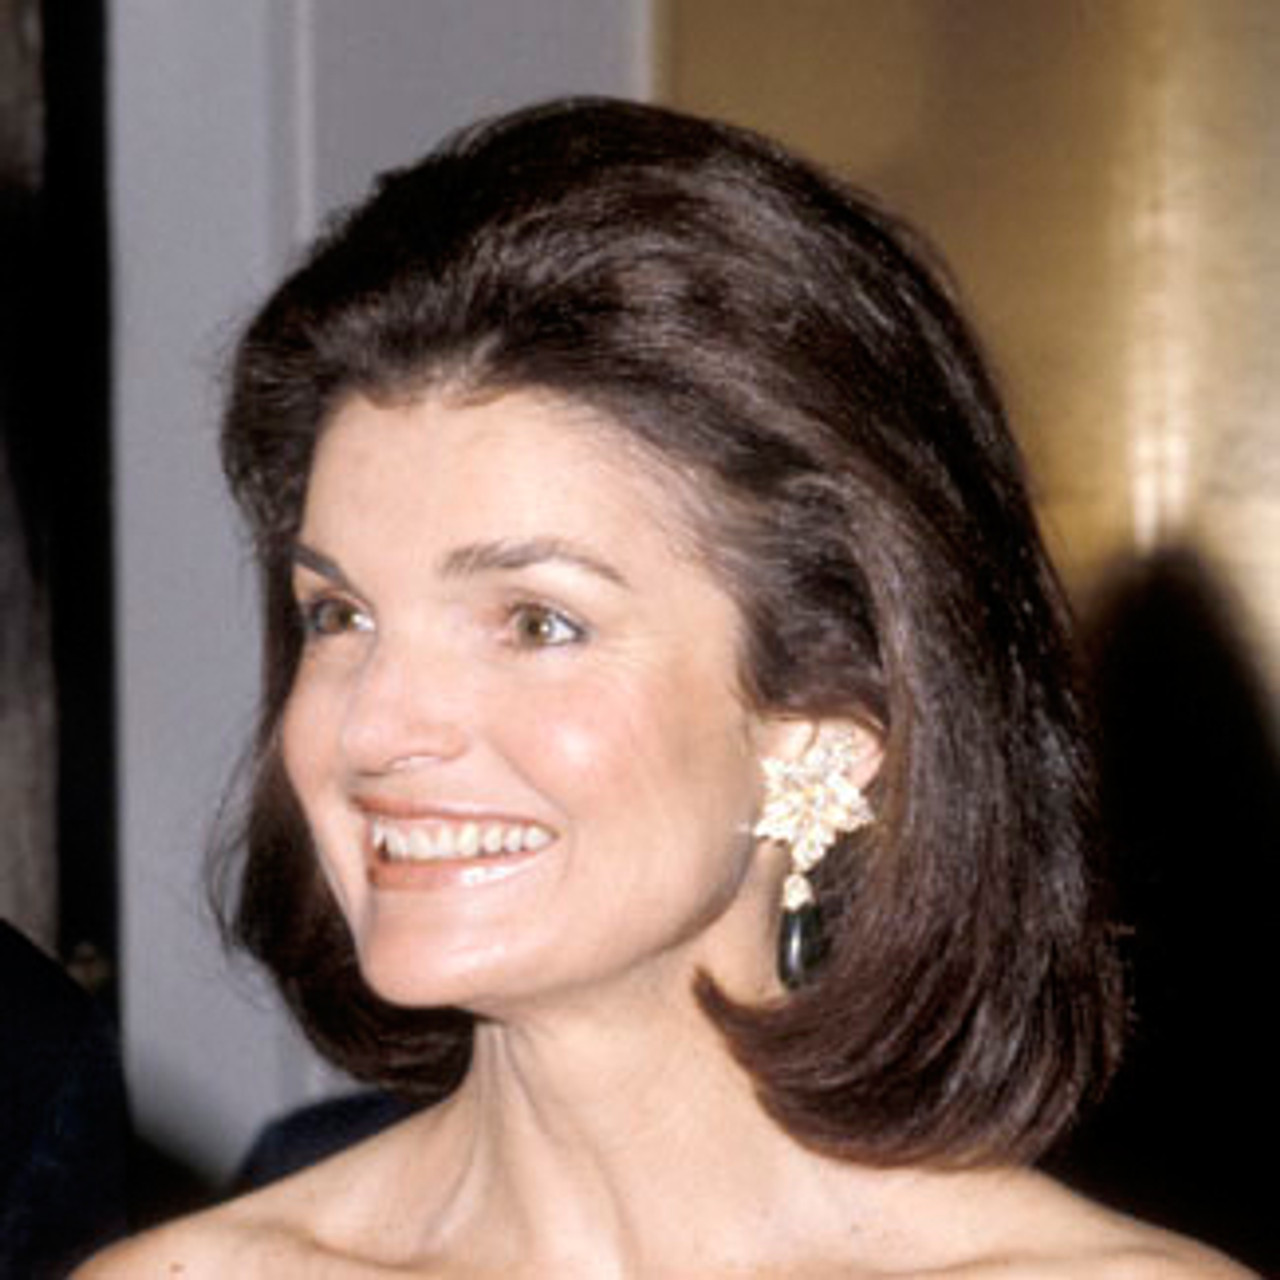 Jackie Kennedy Onassis Last Will & Testament, PDF Download